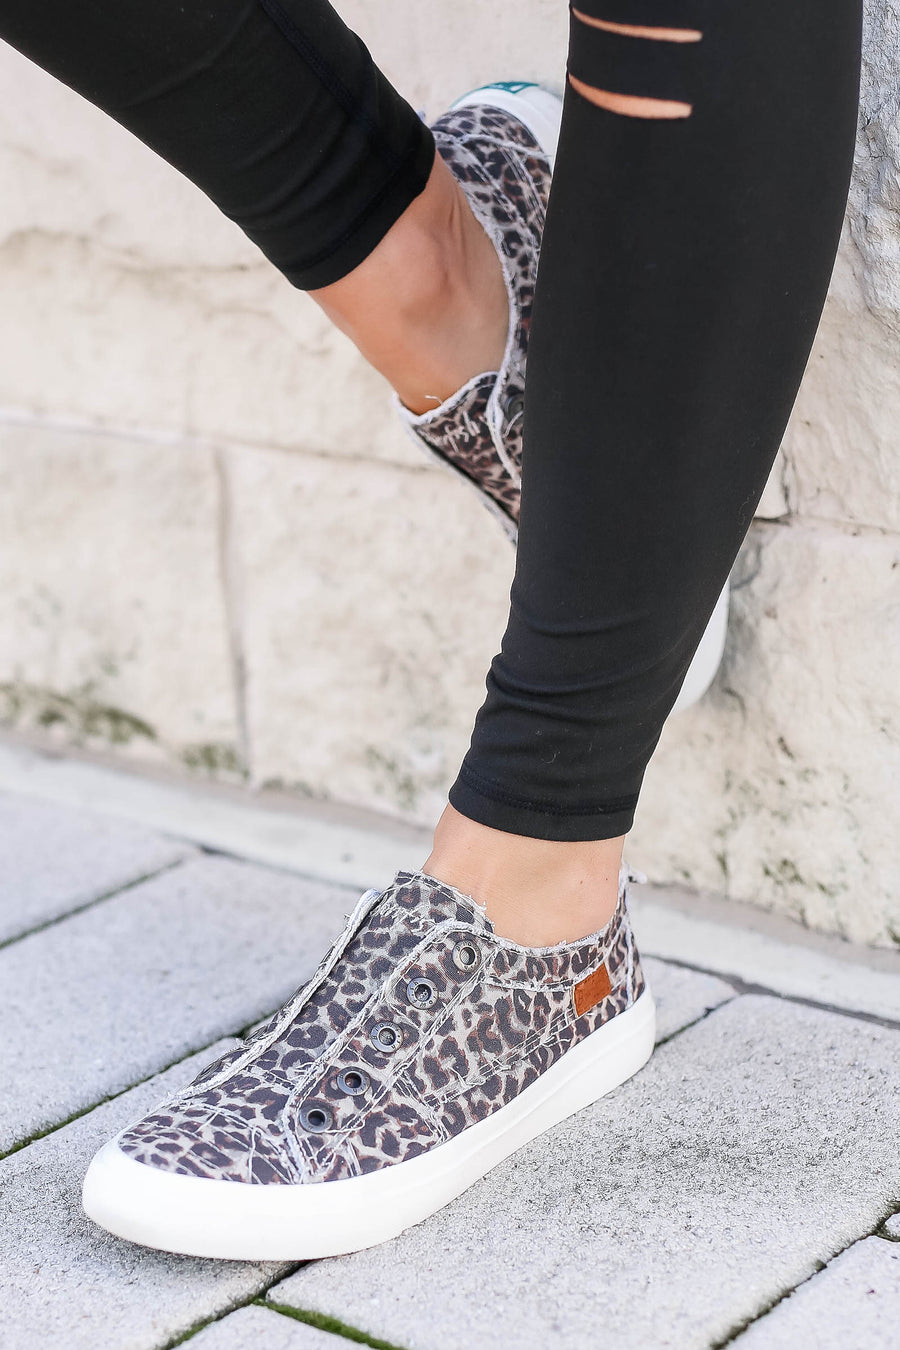 Wherever You Wander Sneakers - Vintage Leopard closet candy women's trendy slip on sneakers 1